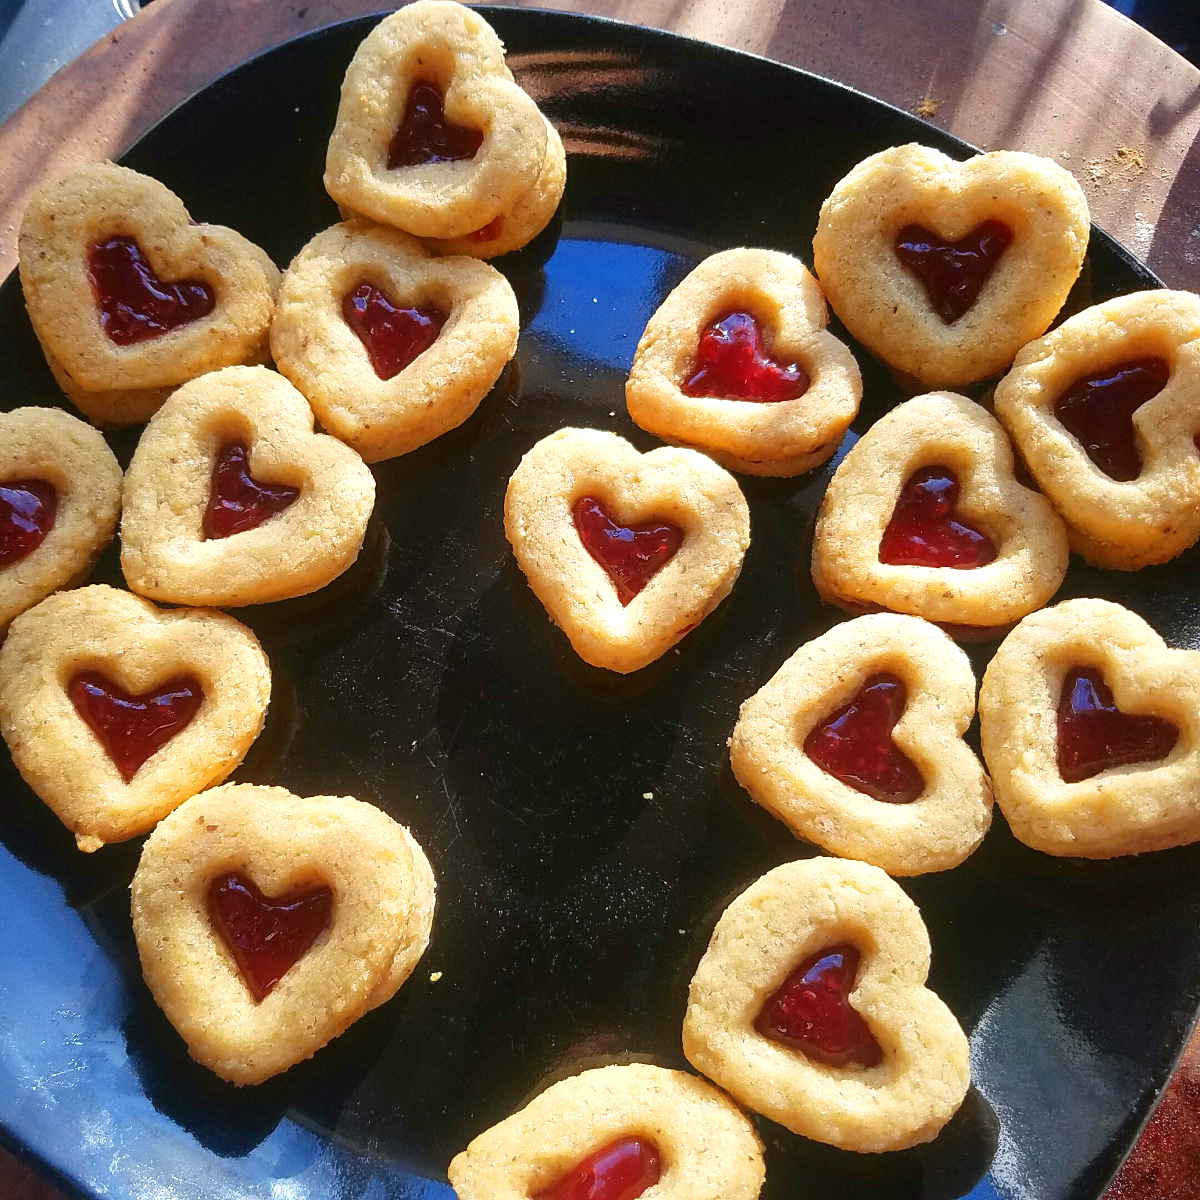 raspbery jam gluten free vegan heart shaped cookies